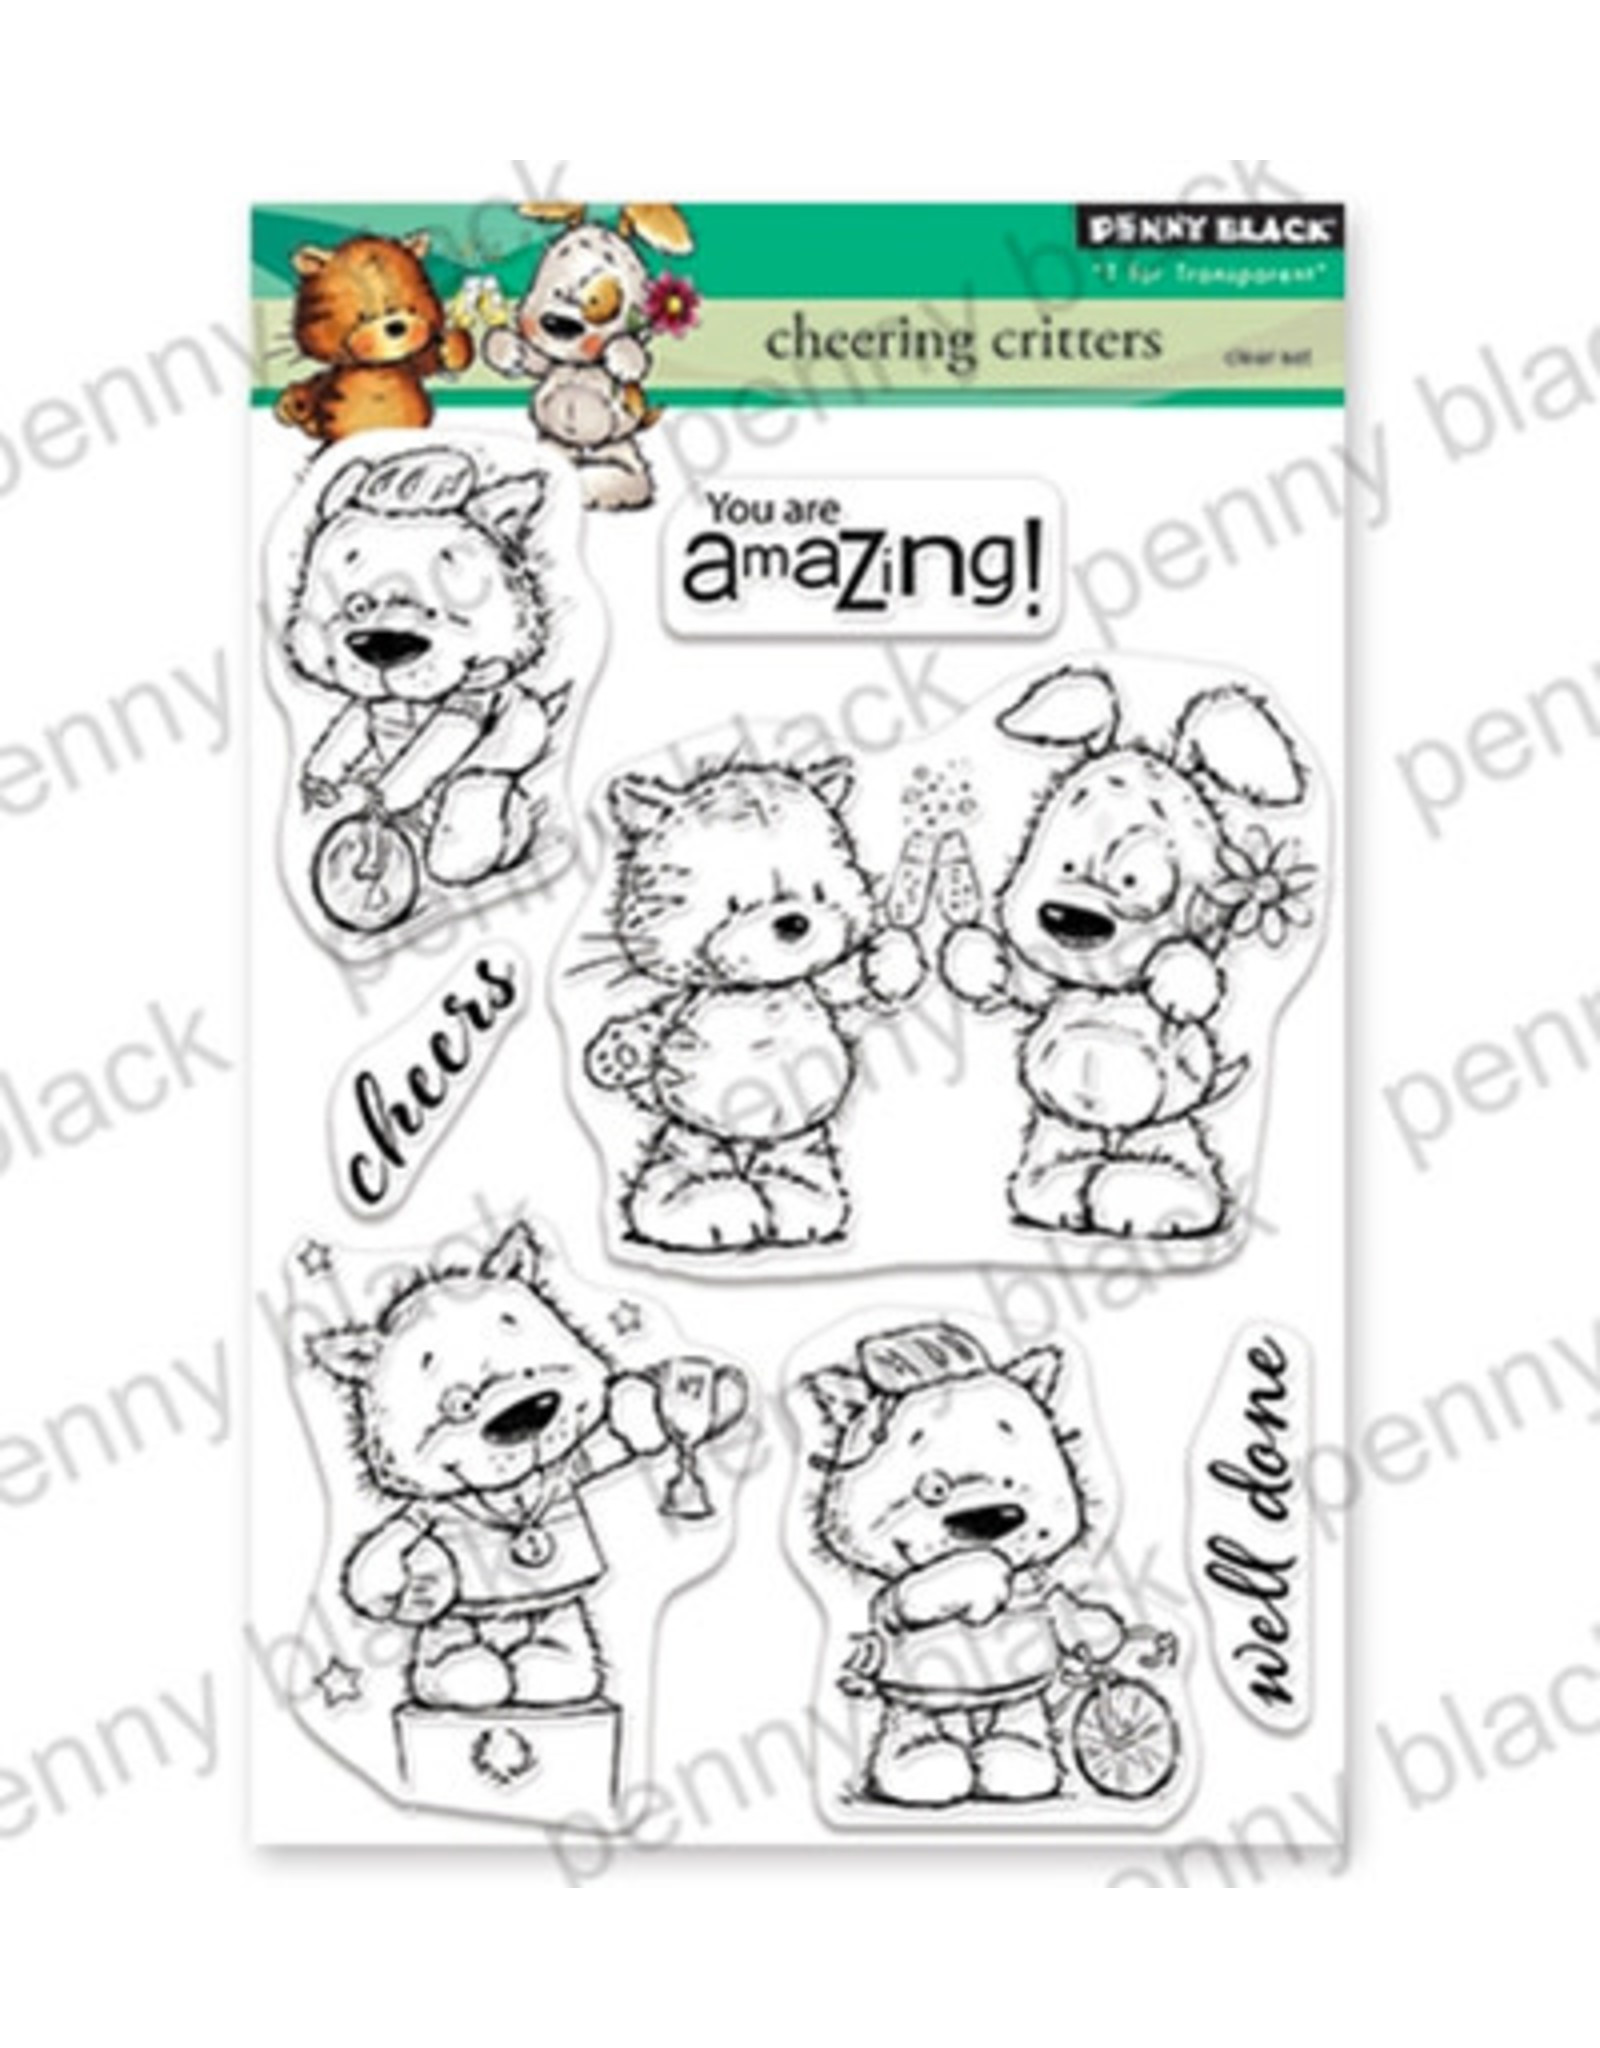 penny black Penny Black Transparant stamp set Cheering critters 30-549